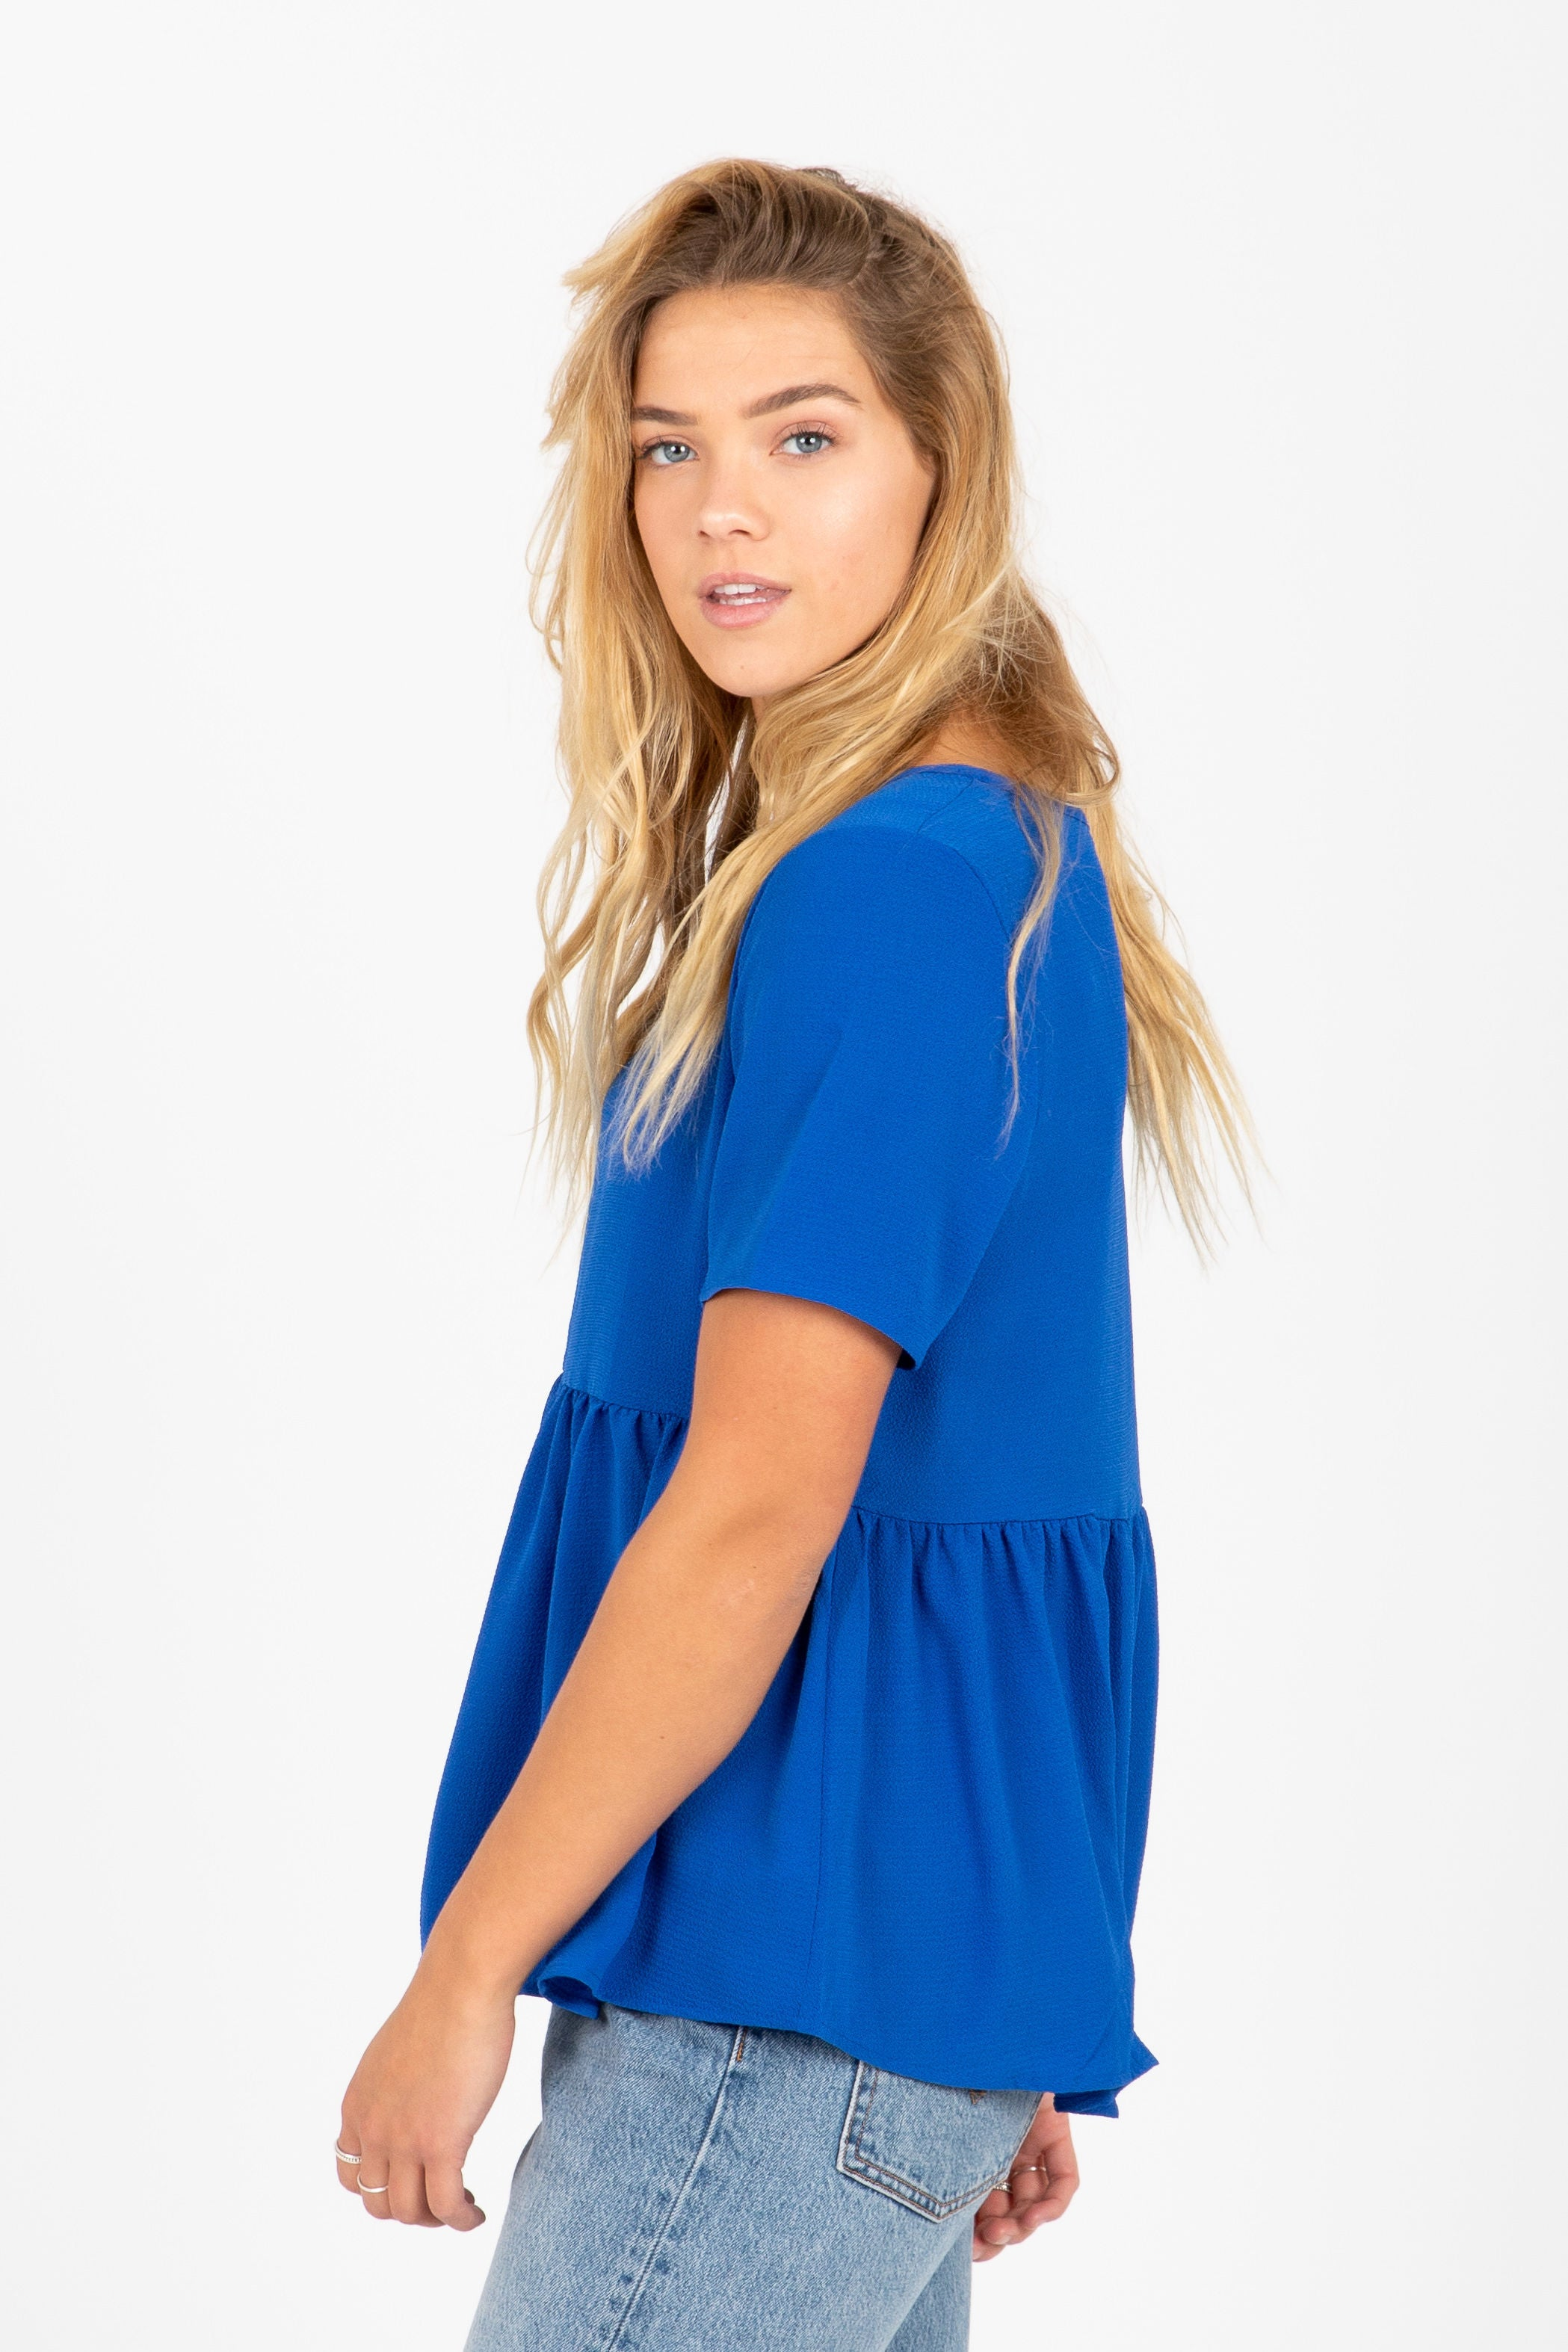 The Elysian Casual Peplum Blouse in Blue